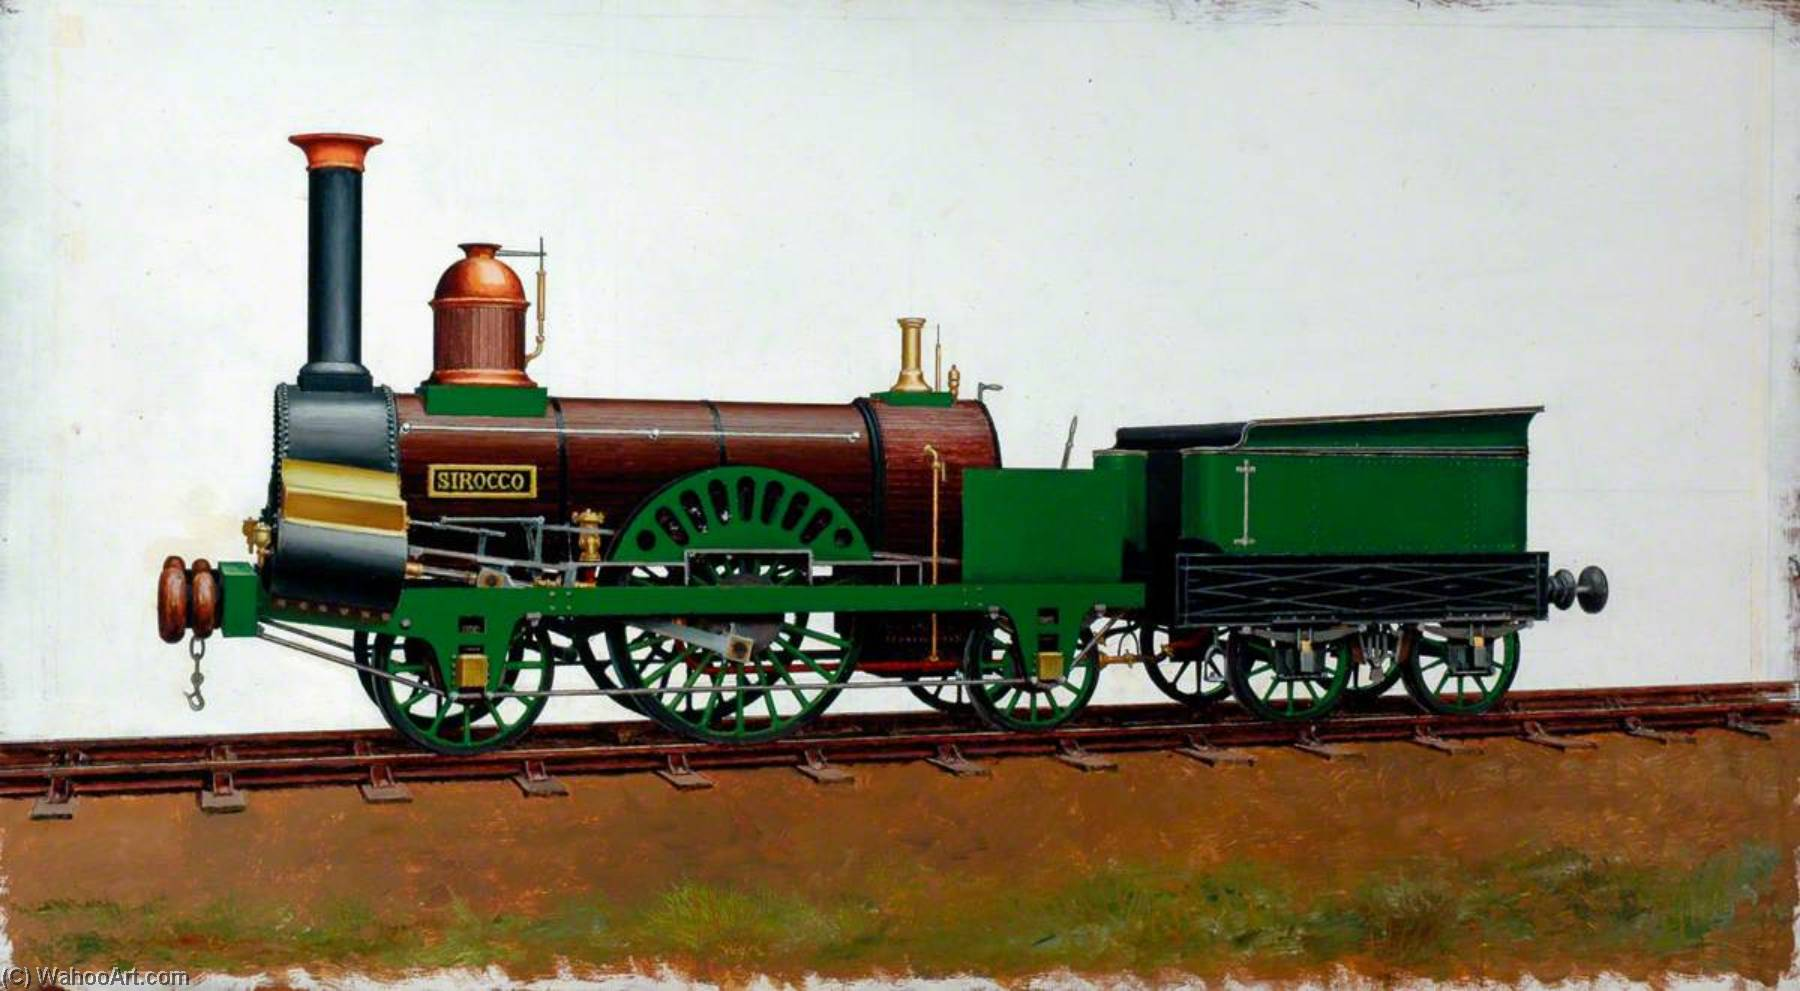 grand junction Eisenbahn 2–2–2 Lokomotive 'Sirocco' von Henry Maurice Whitcombe | WahooArt.com